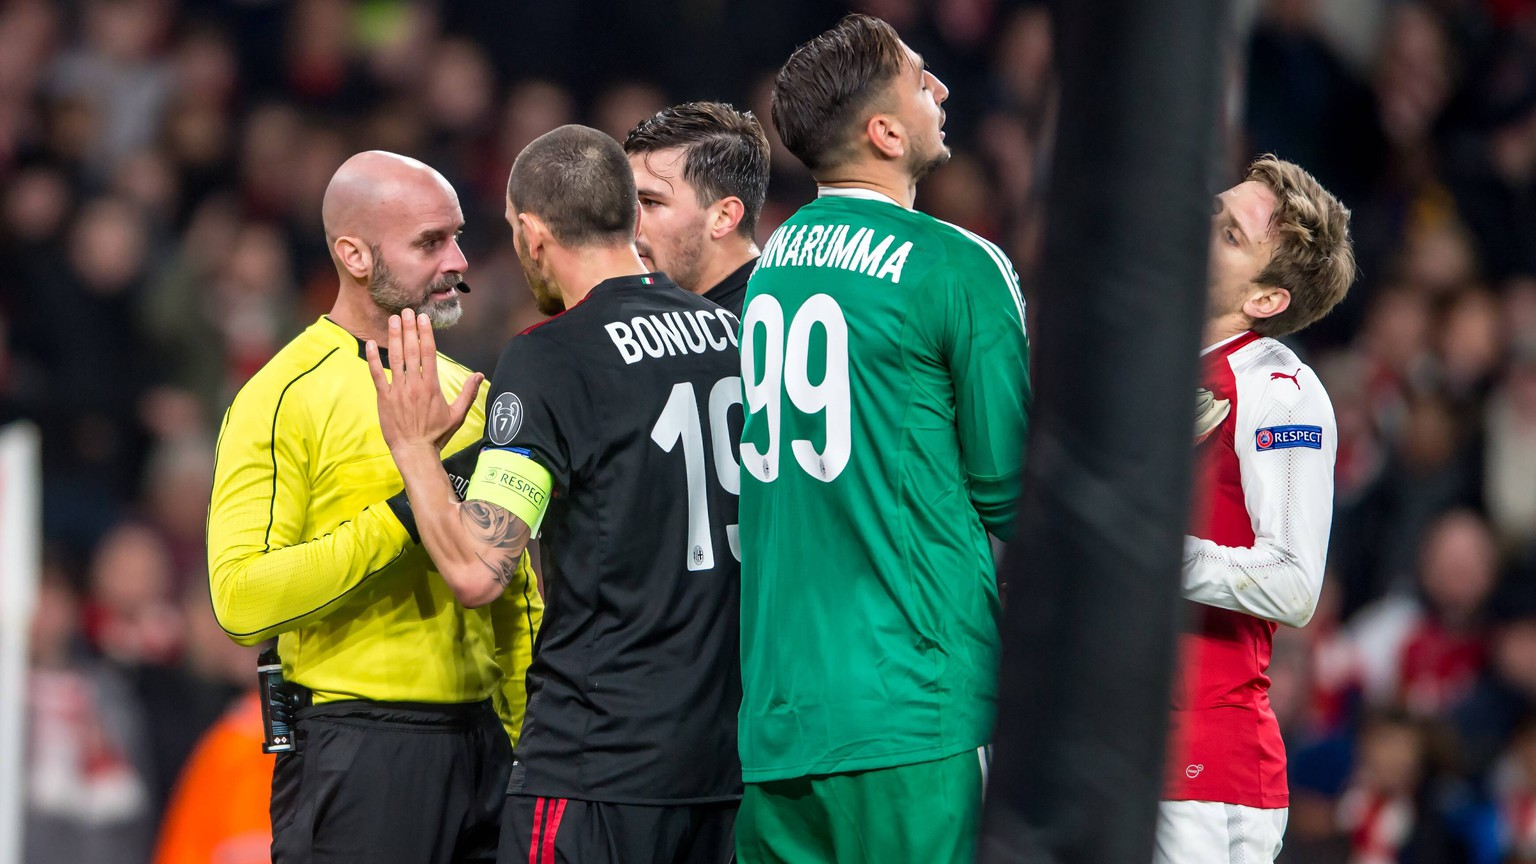 Leonardo Bonucci of AC Milan confronts the assistant referee after a discussed penalty during the UEFA Europa League Round of 16 Leg 2 of 2 between Arsenal and AC Milan at the Emirates Stadium, London, England on 15 March 2018. PUBLICATIONxNOTxINxUK Copyright: xSalvioxCalabresex 19300004